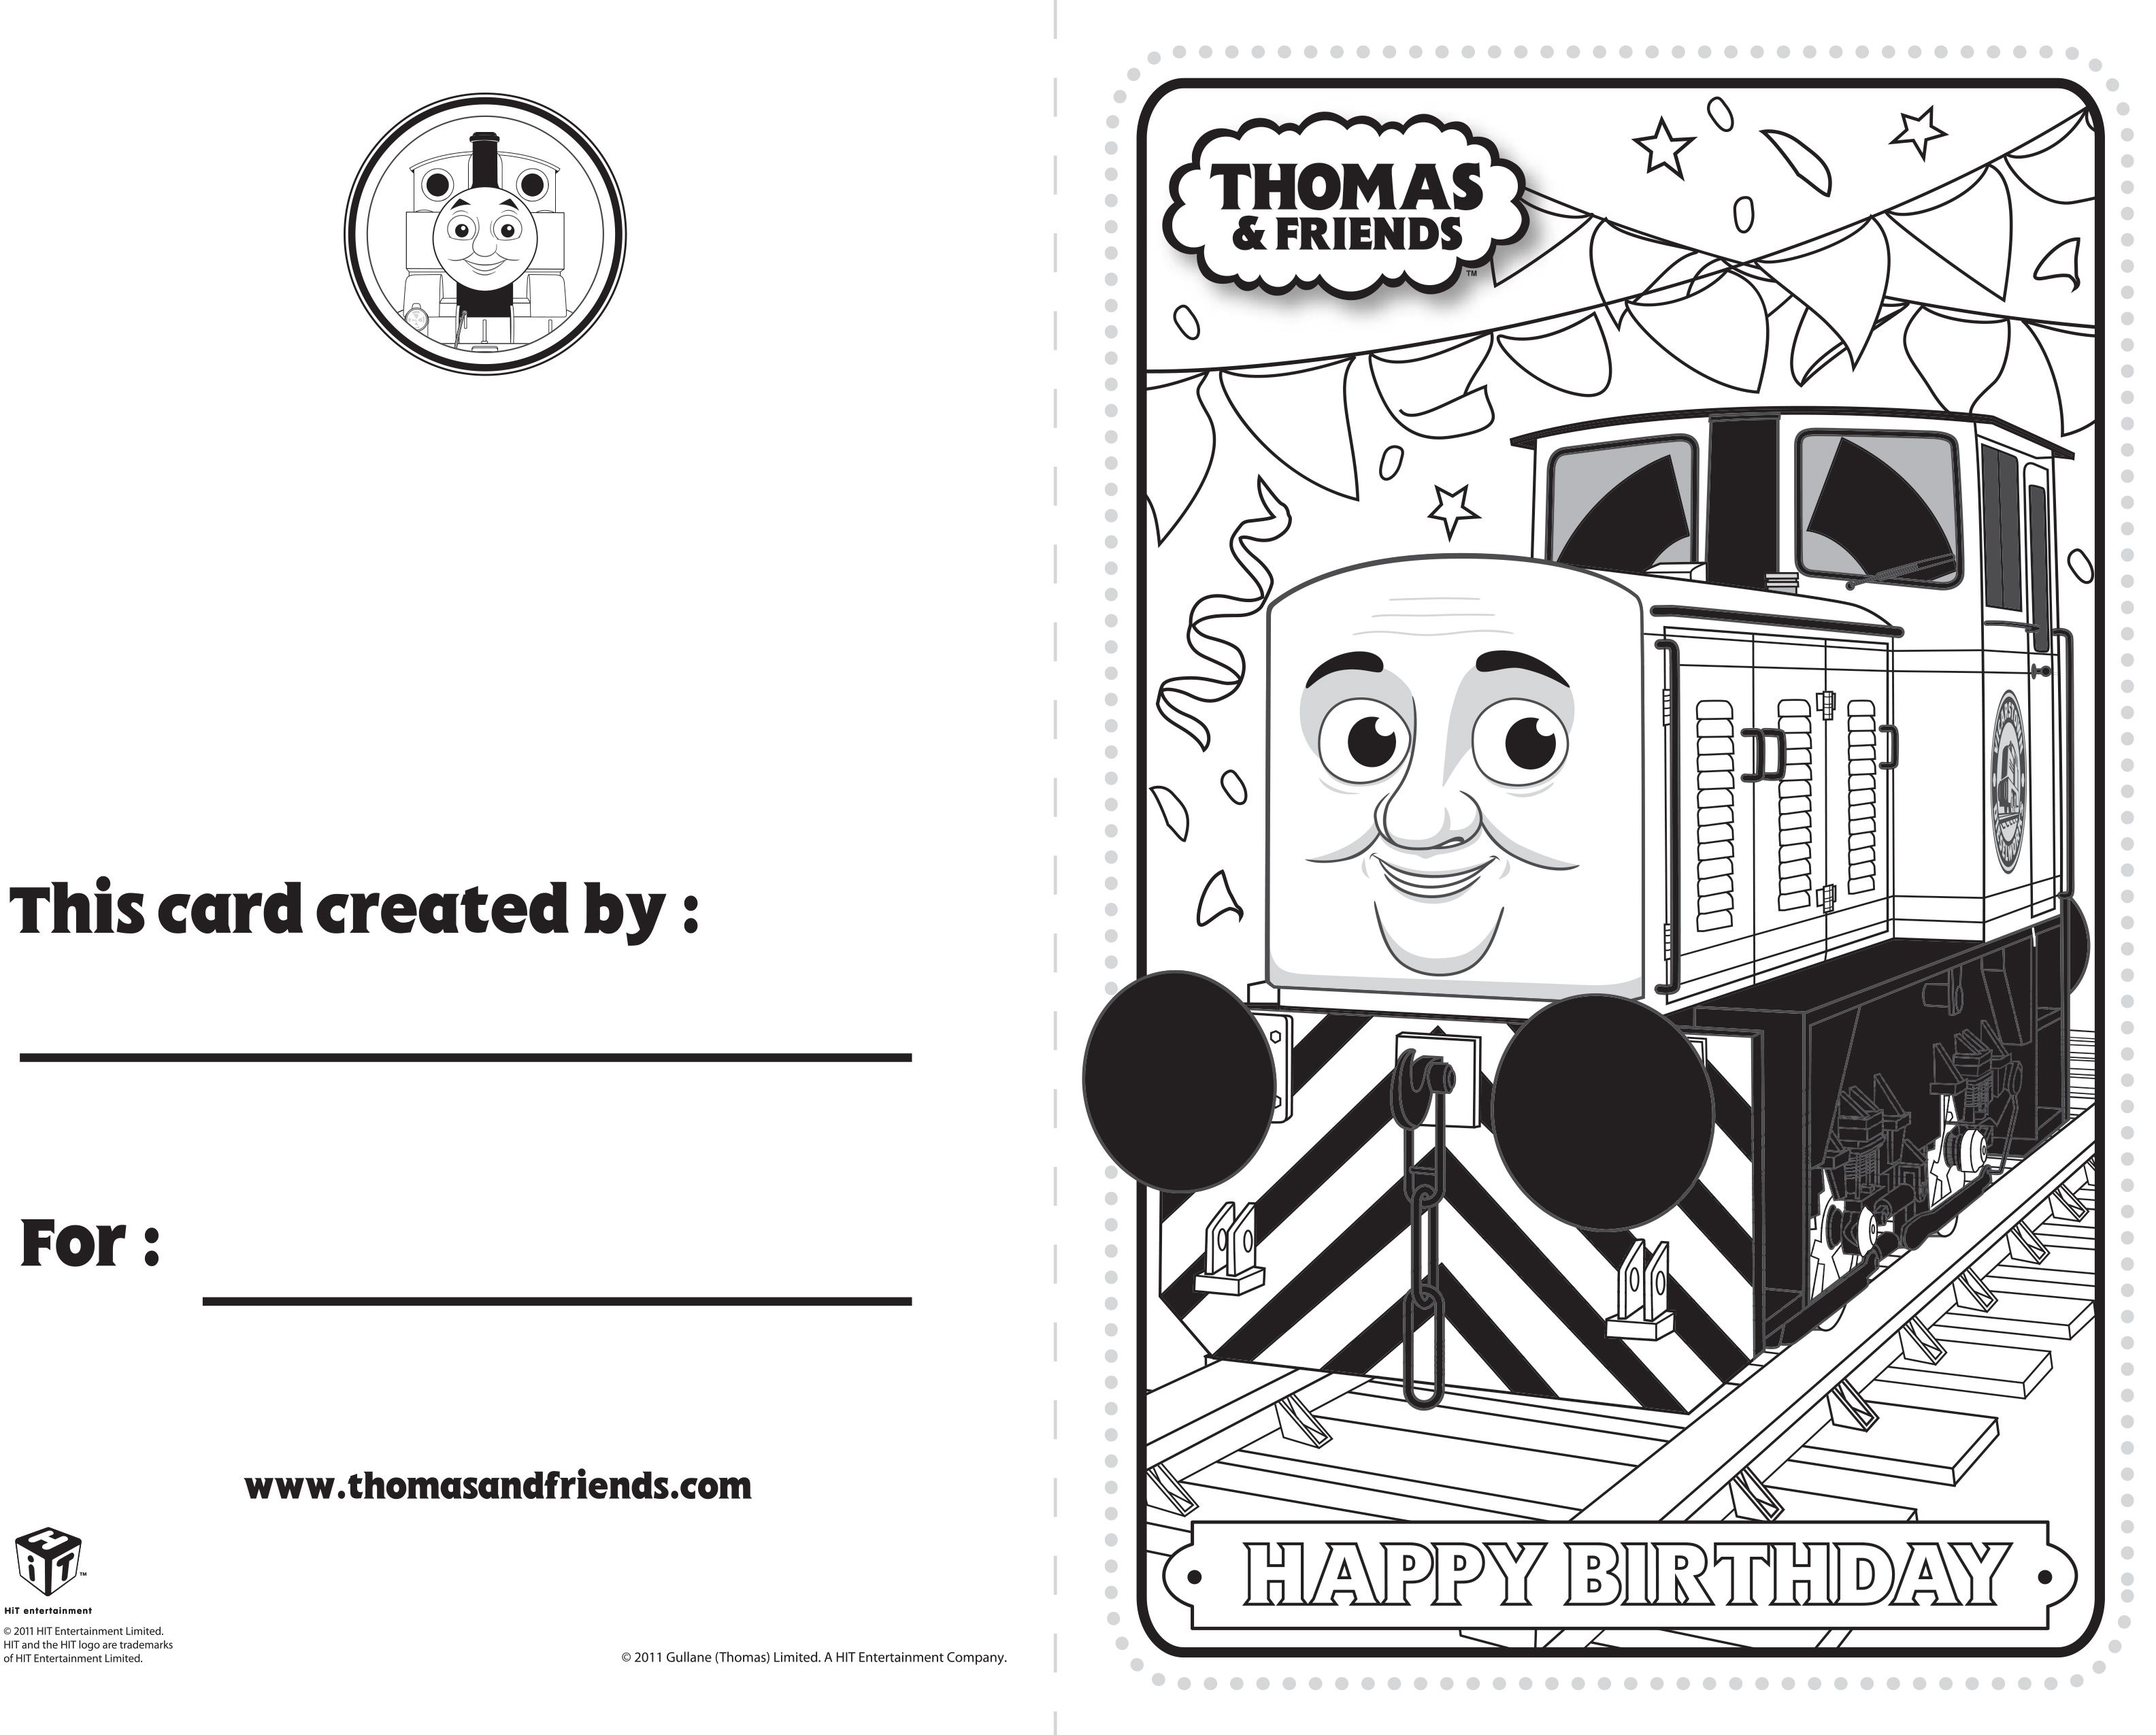 Thomas And Friends Birthday Card Dart Thomasandfriends